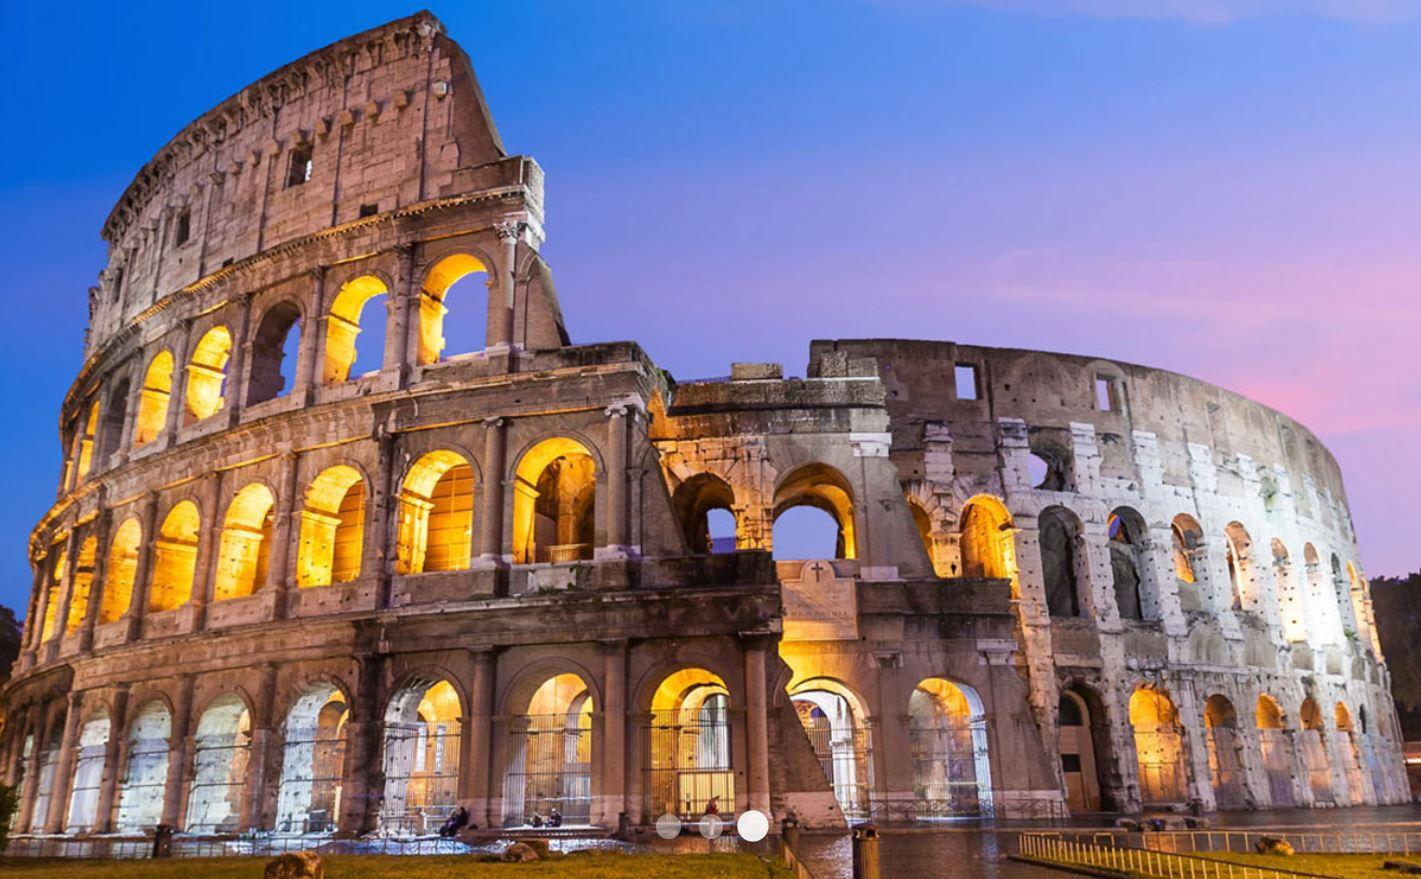 Enjoy Rome - Colosseum Moonlight Experience